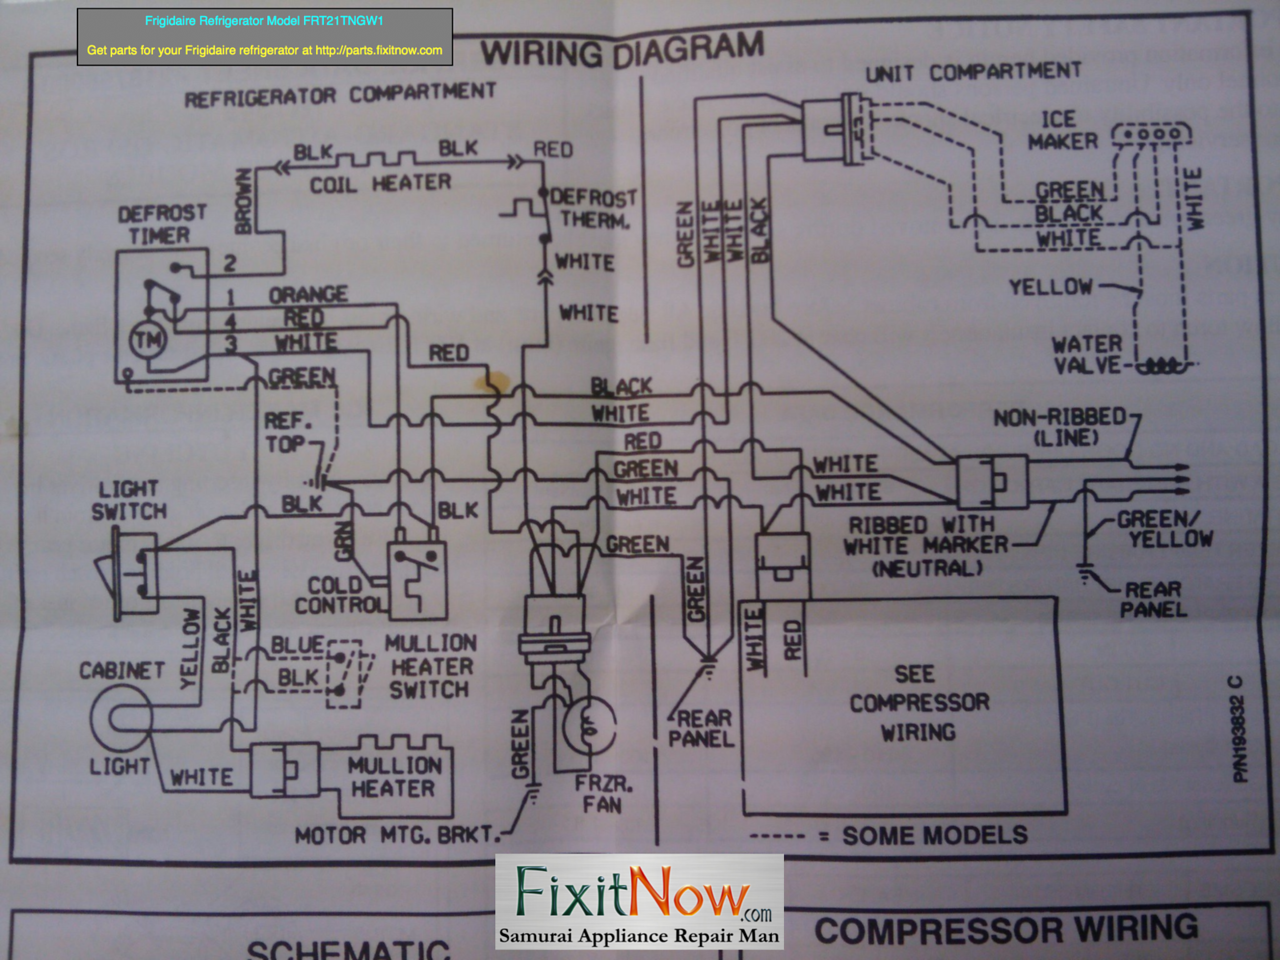 Frigidaire Wiring Diagram: Wiring Diagrams and Schematics - appliantology,Design